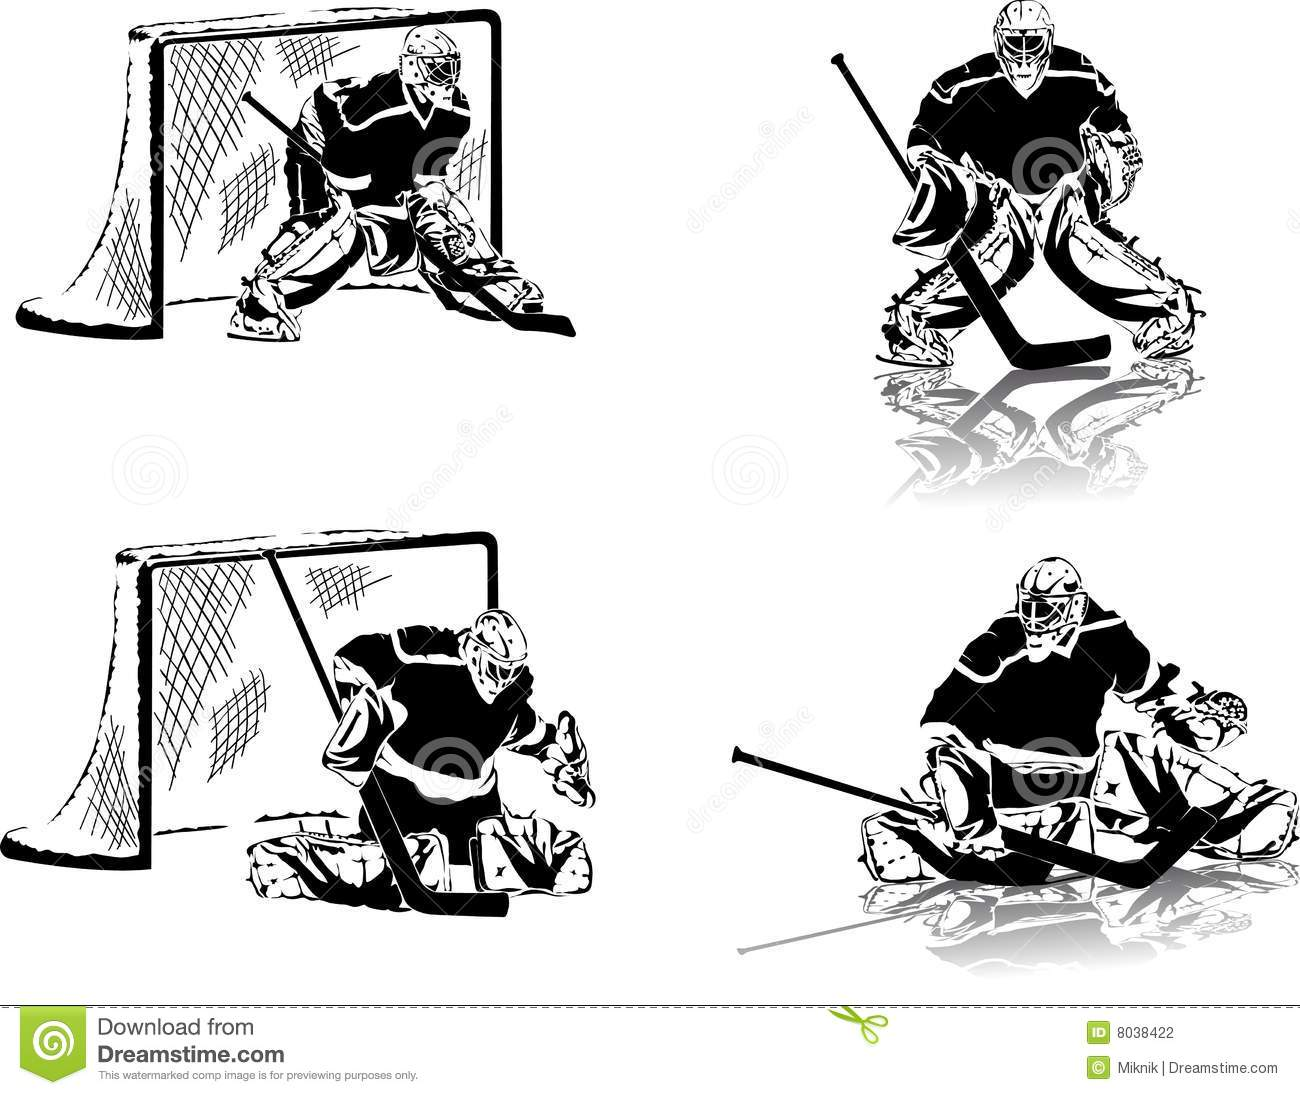 how to draw a goal keeper in sovvver